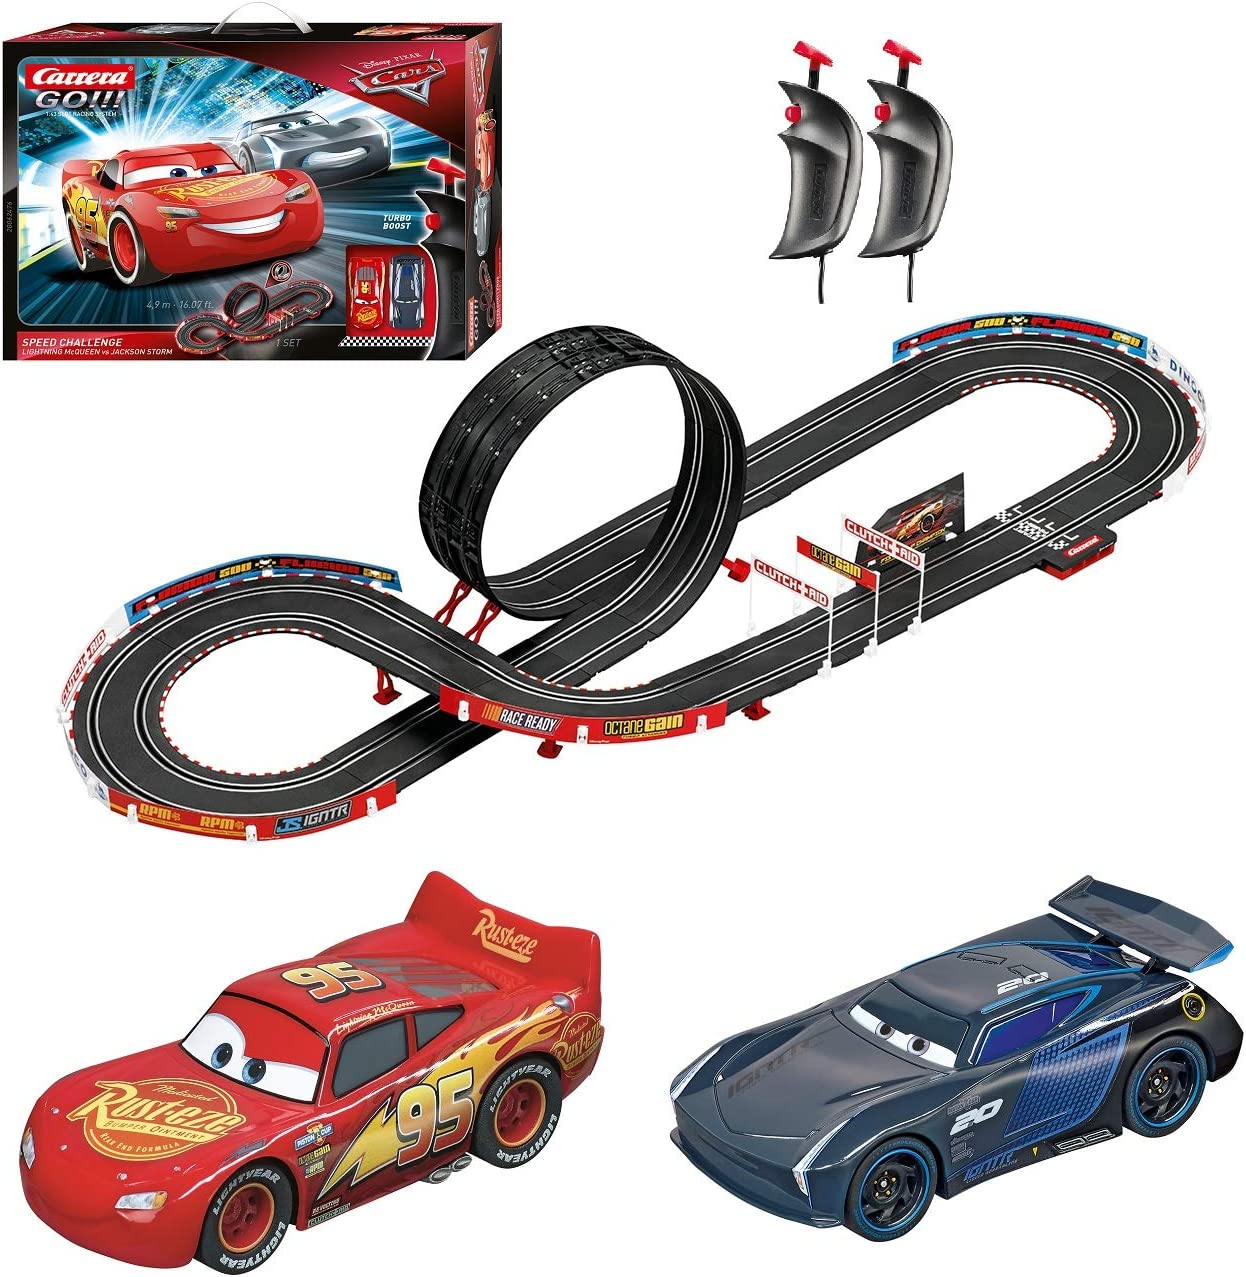 Carrera Go Disney Pixar Cars Speed Challenge Racing Track Game Toy Play Set With Slot Cars 16 Foot Track Lap Counter Speed Controllers Toys Games